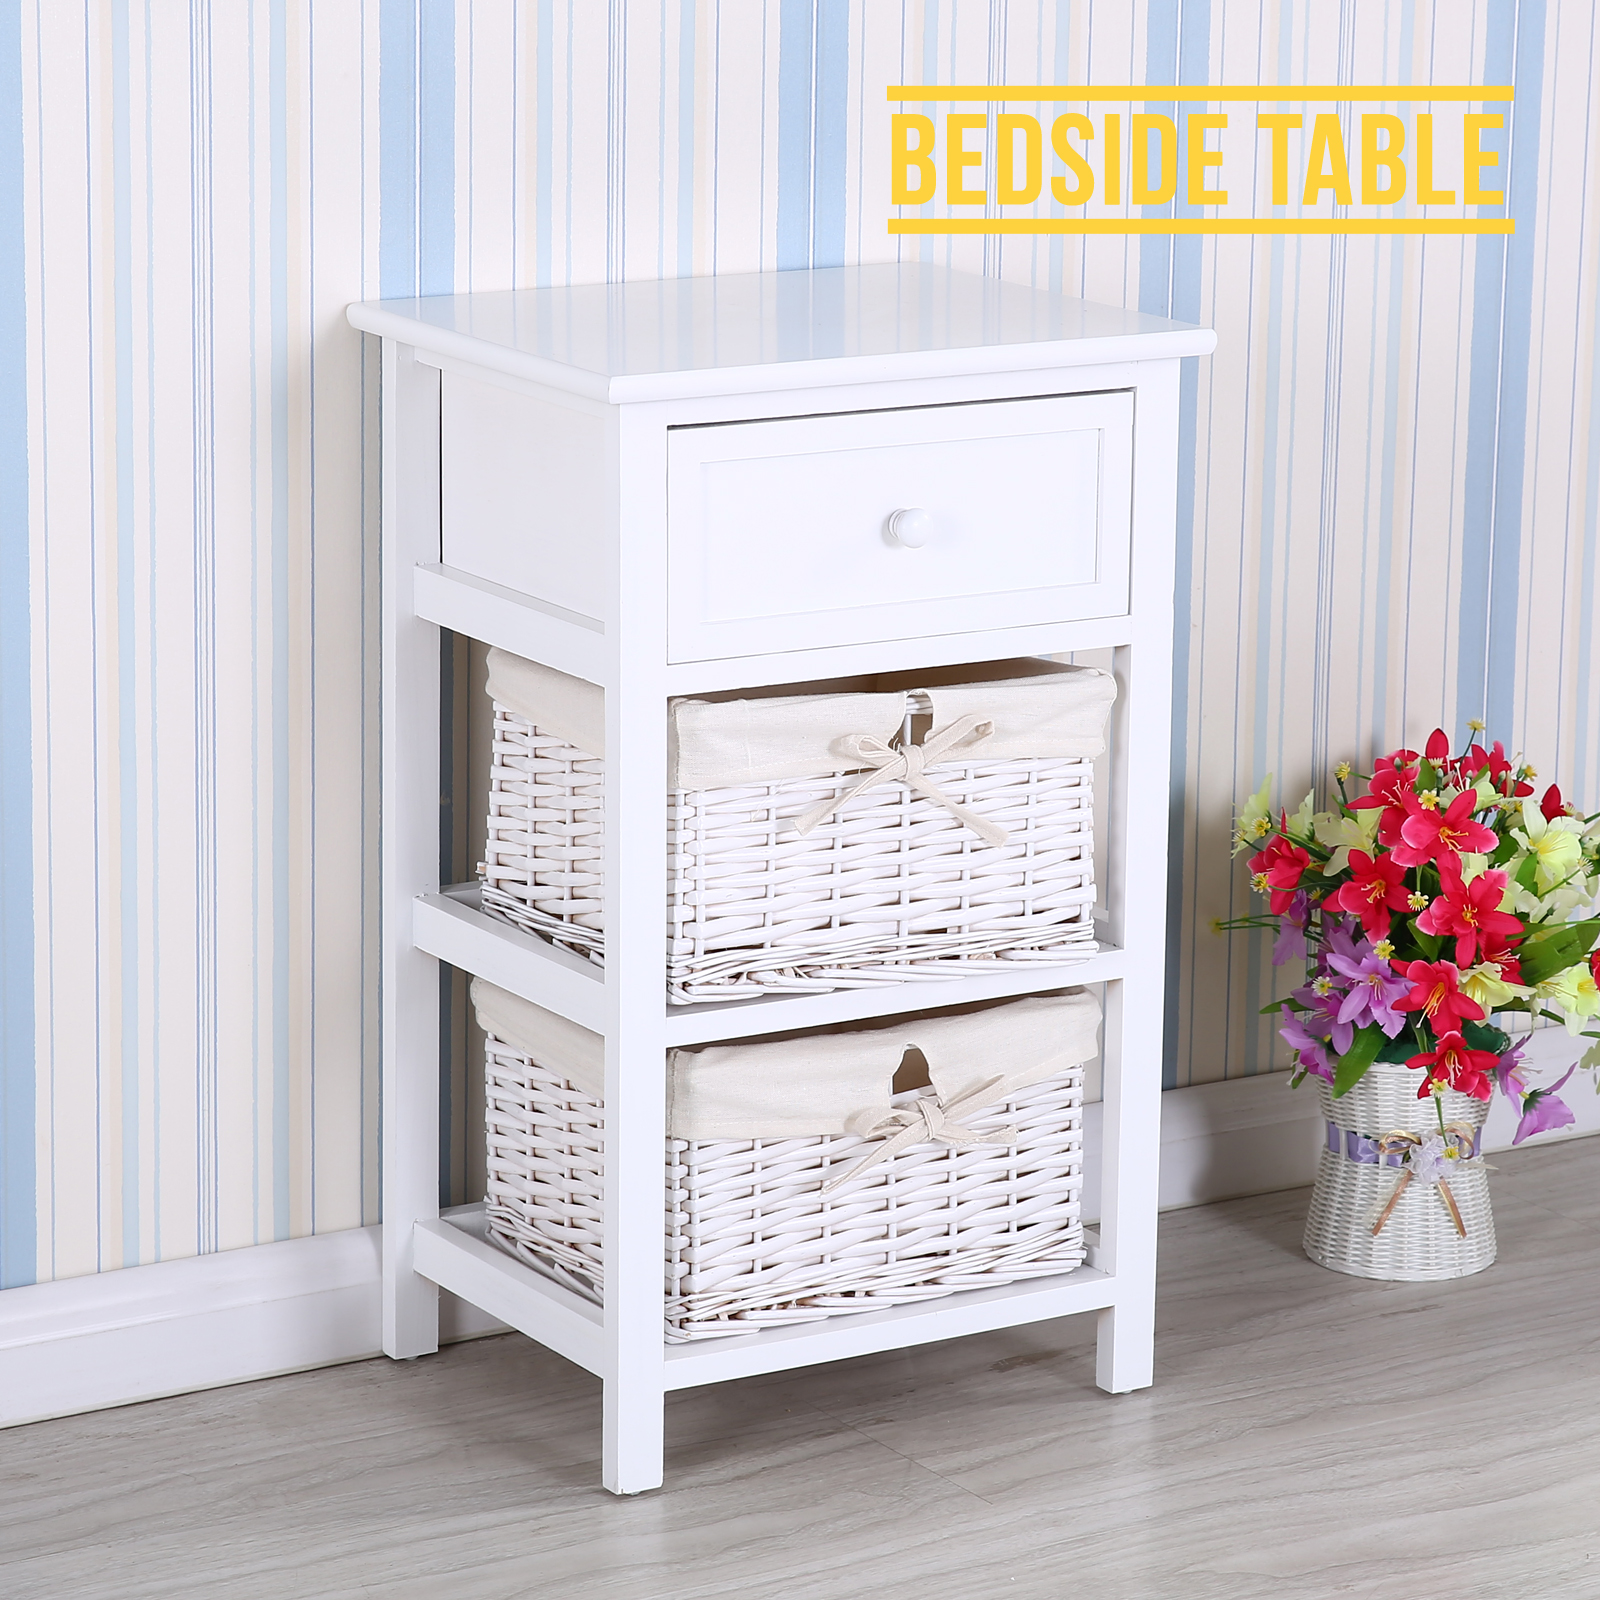 shabby wicker storage wood bedside table unit wooden cabinet w 3 drawer ebay. Black Bedroom Furniture Sets. Home Design Ideas